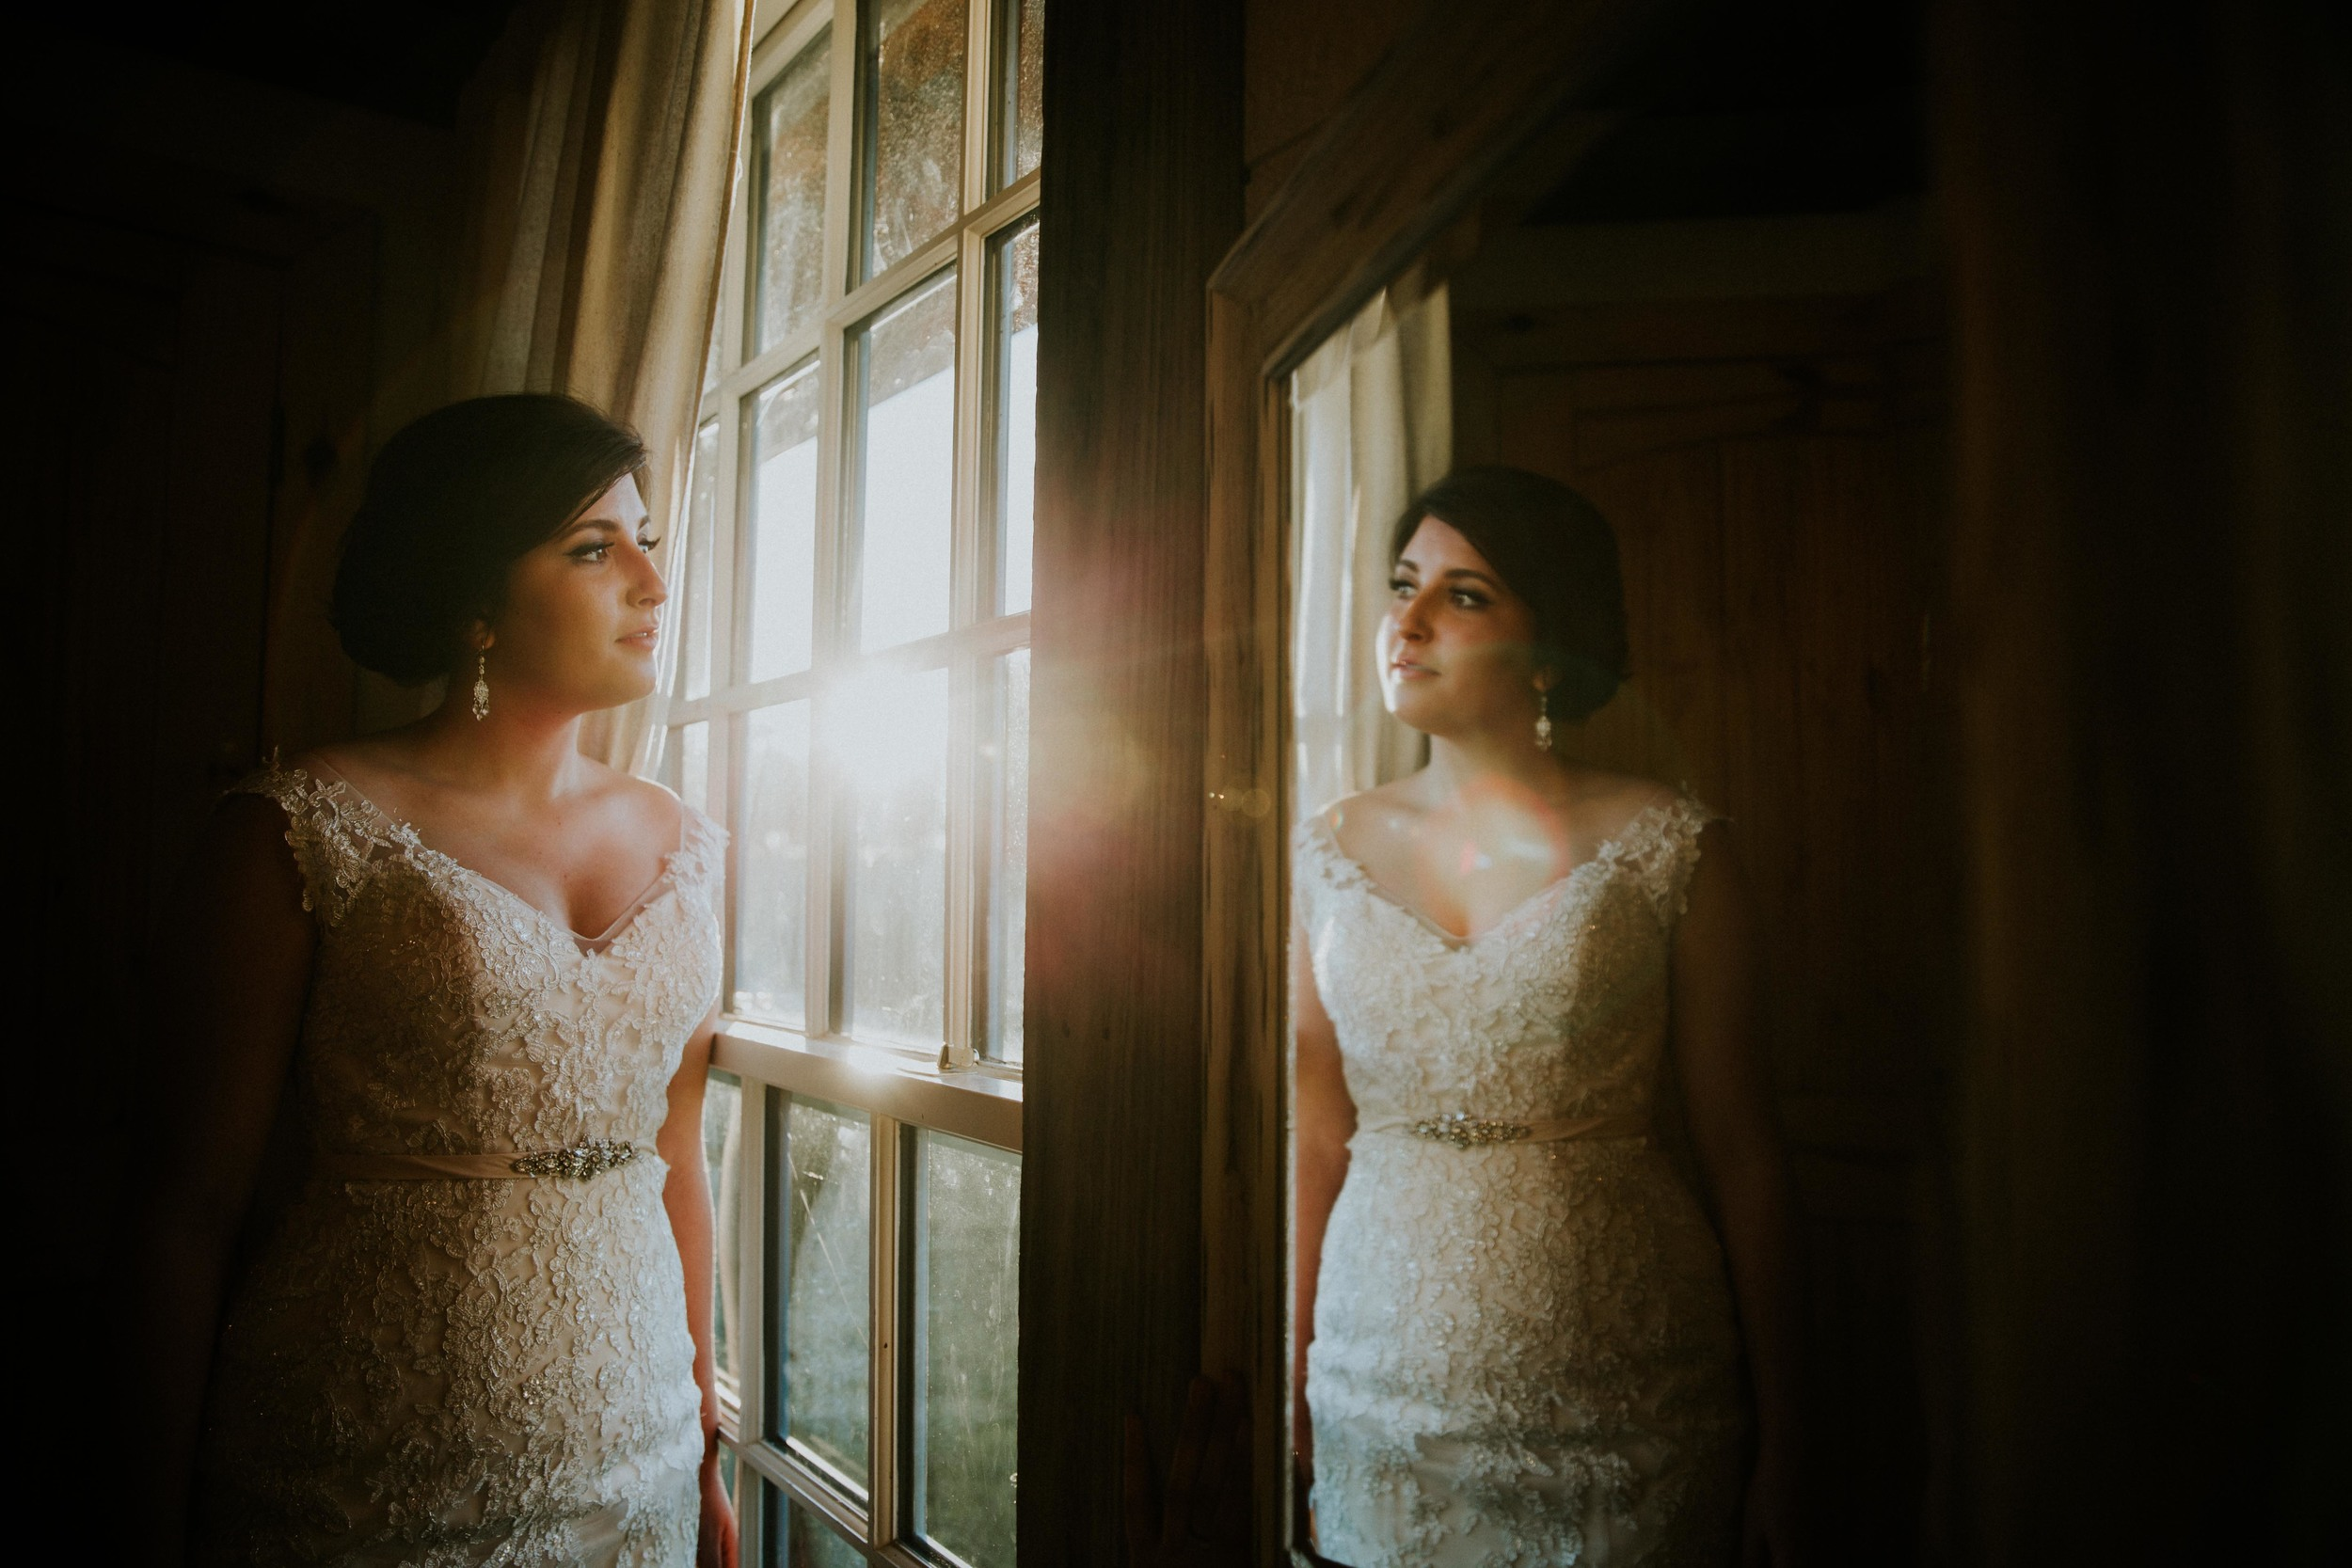 Our day finished with an absolutely incredible sunset streaming through the bridal suite at Rustic Grace Estate, resulting in this final image of the day.